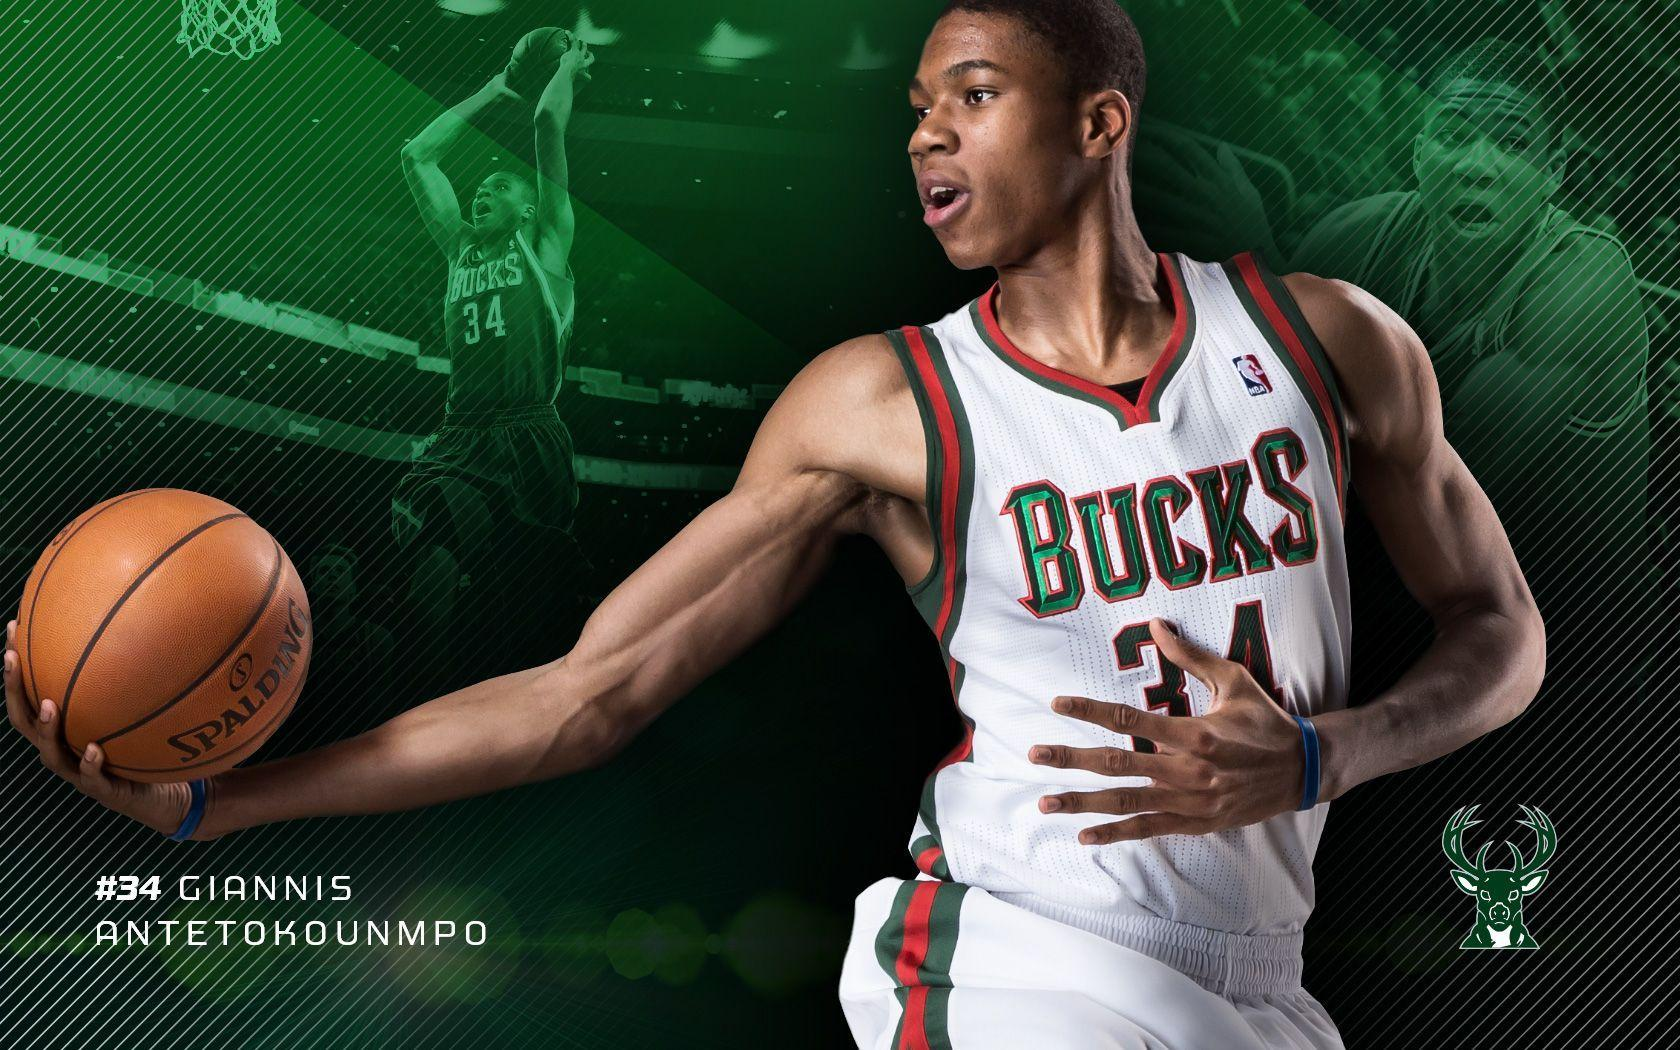 Bucks Backgrounds and Wallpapers 2013-2014 Season | Milwaukee Bucks